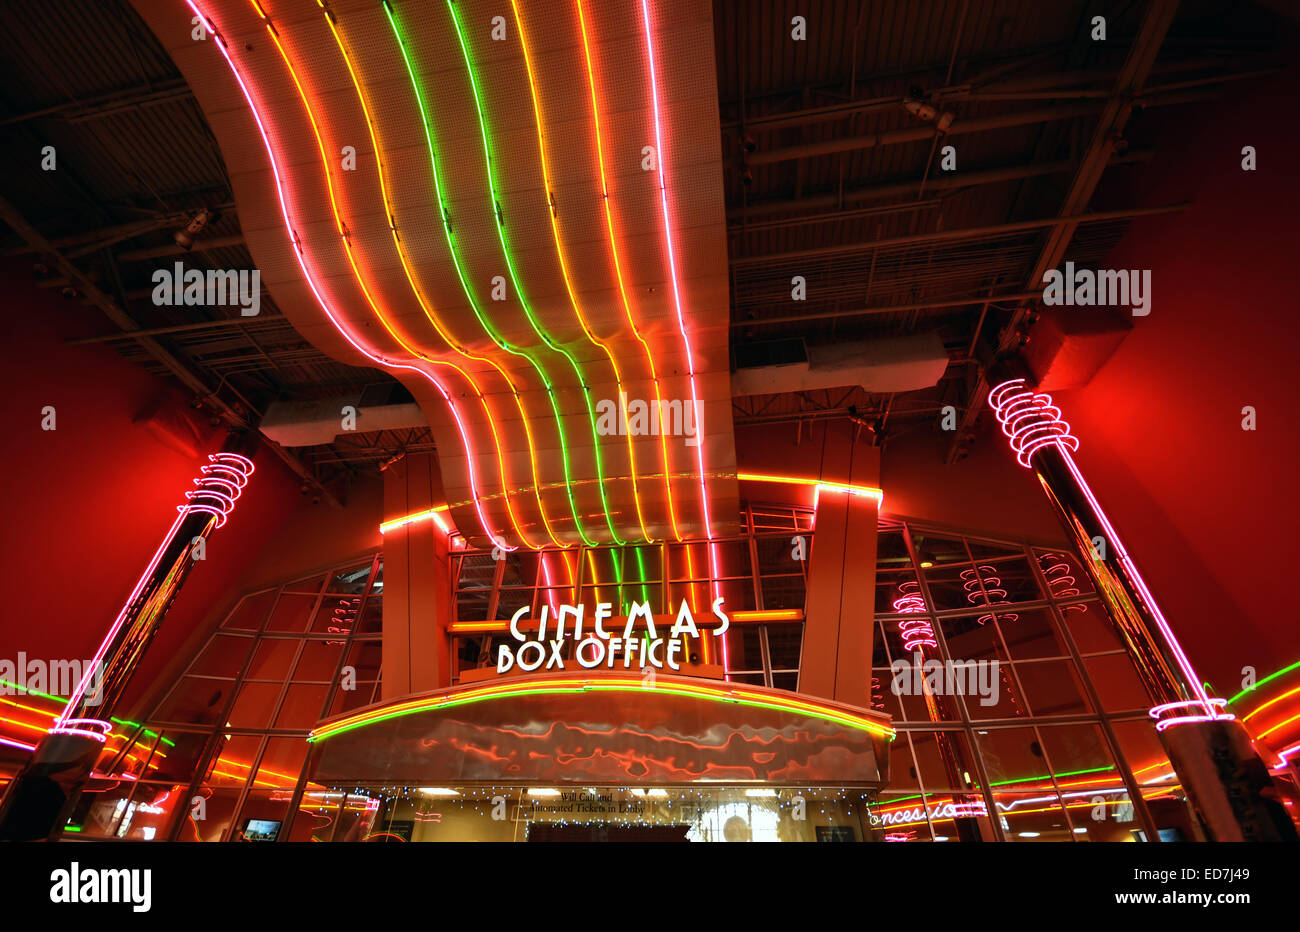 Neon lights at movie theater entrance and box office - Stock Image